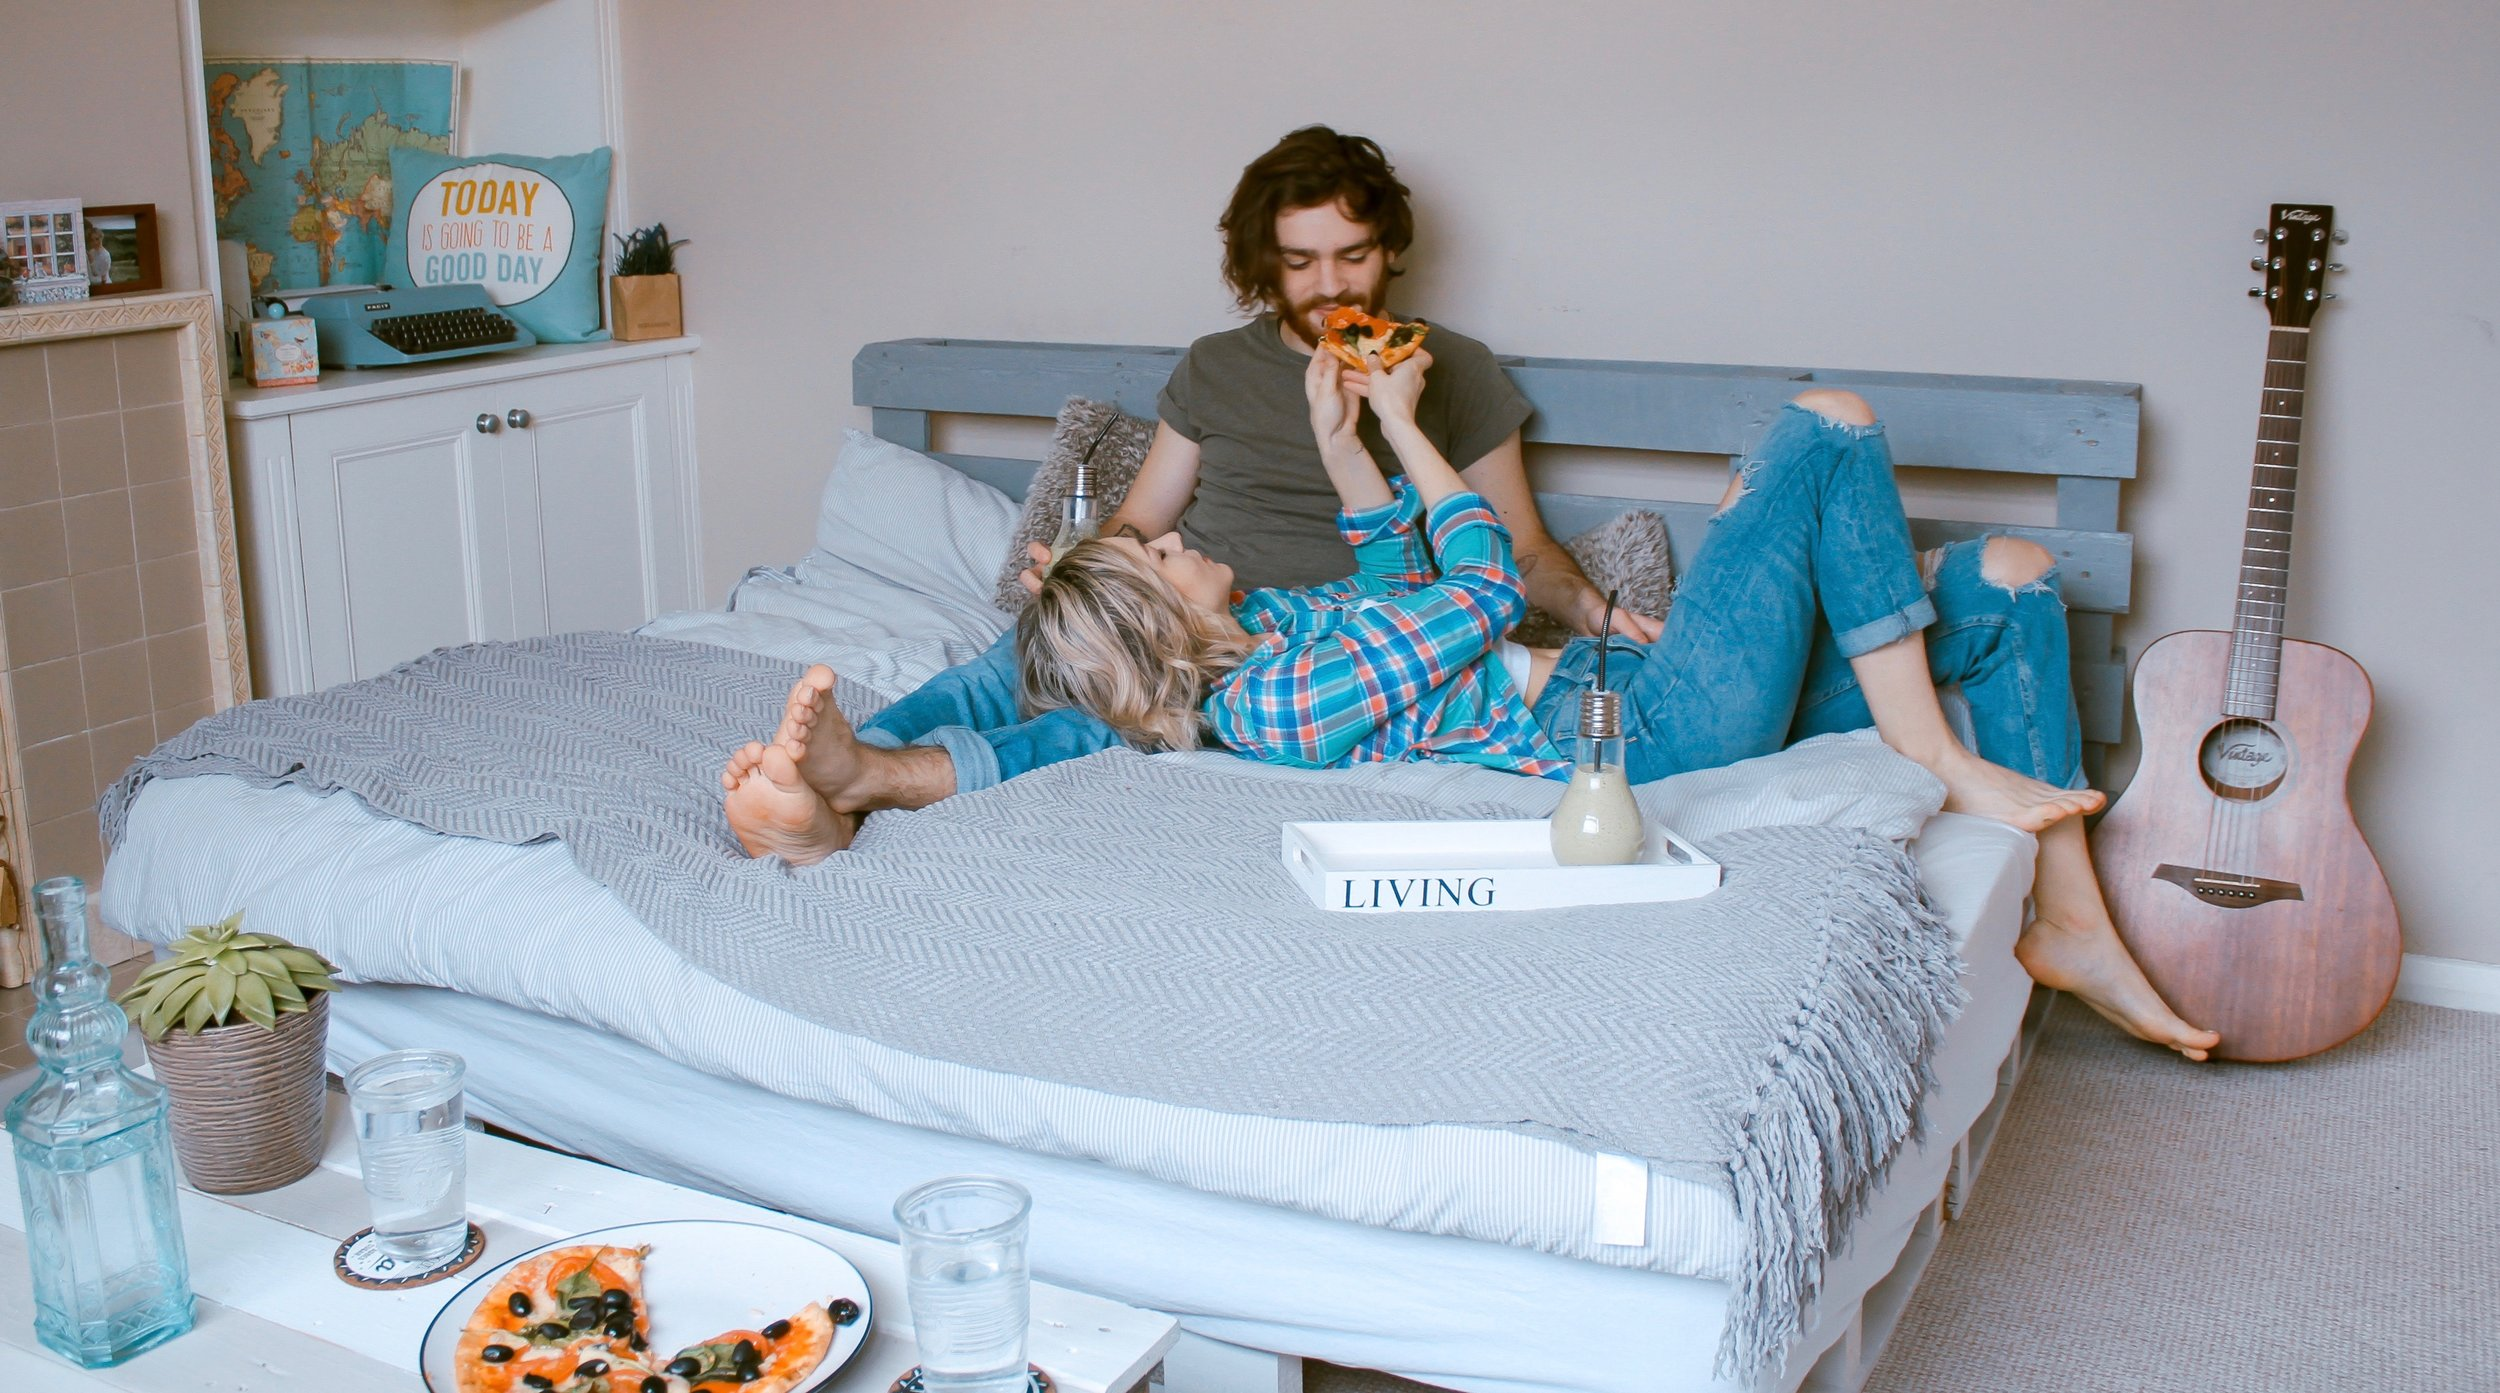 Dating while living at home in Los Angeles